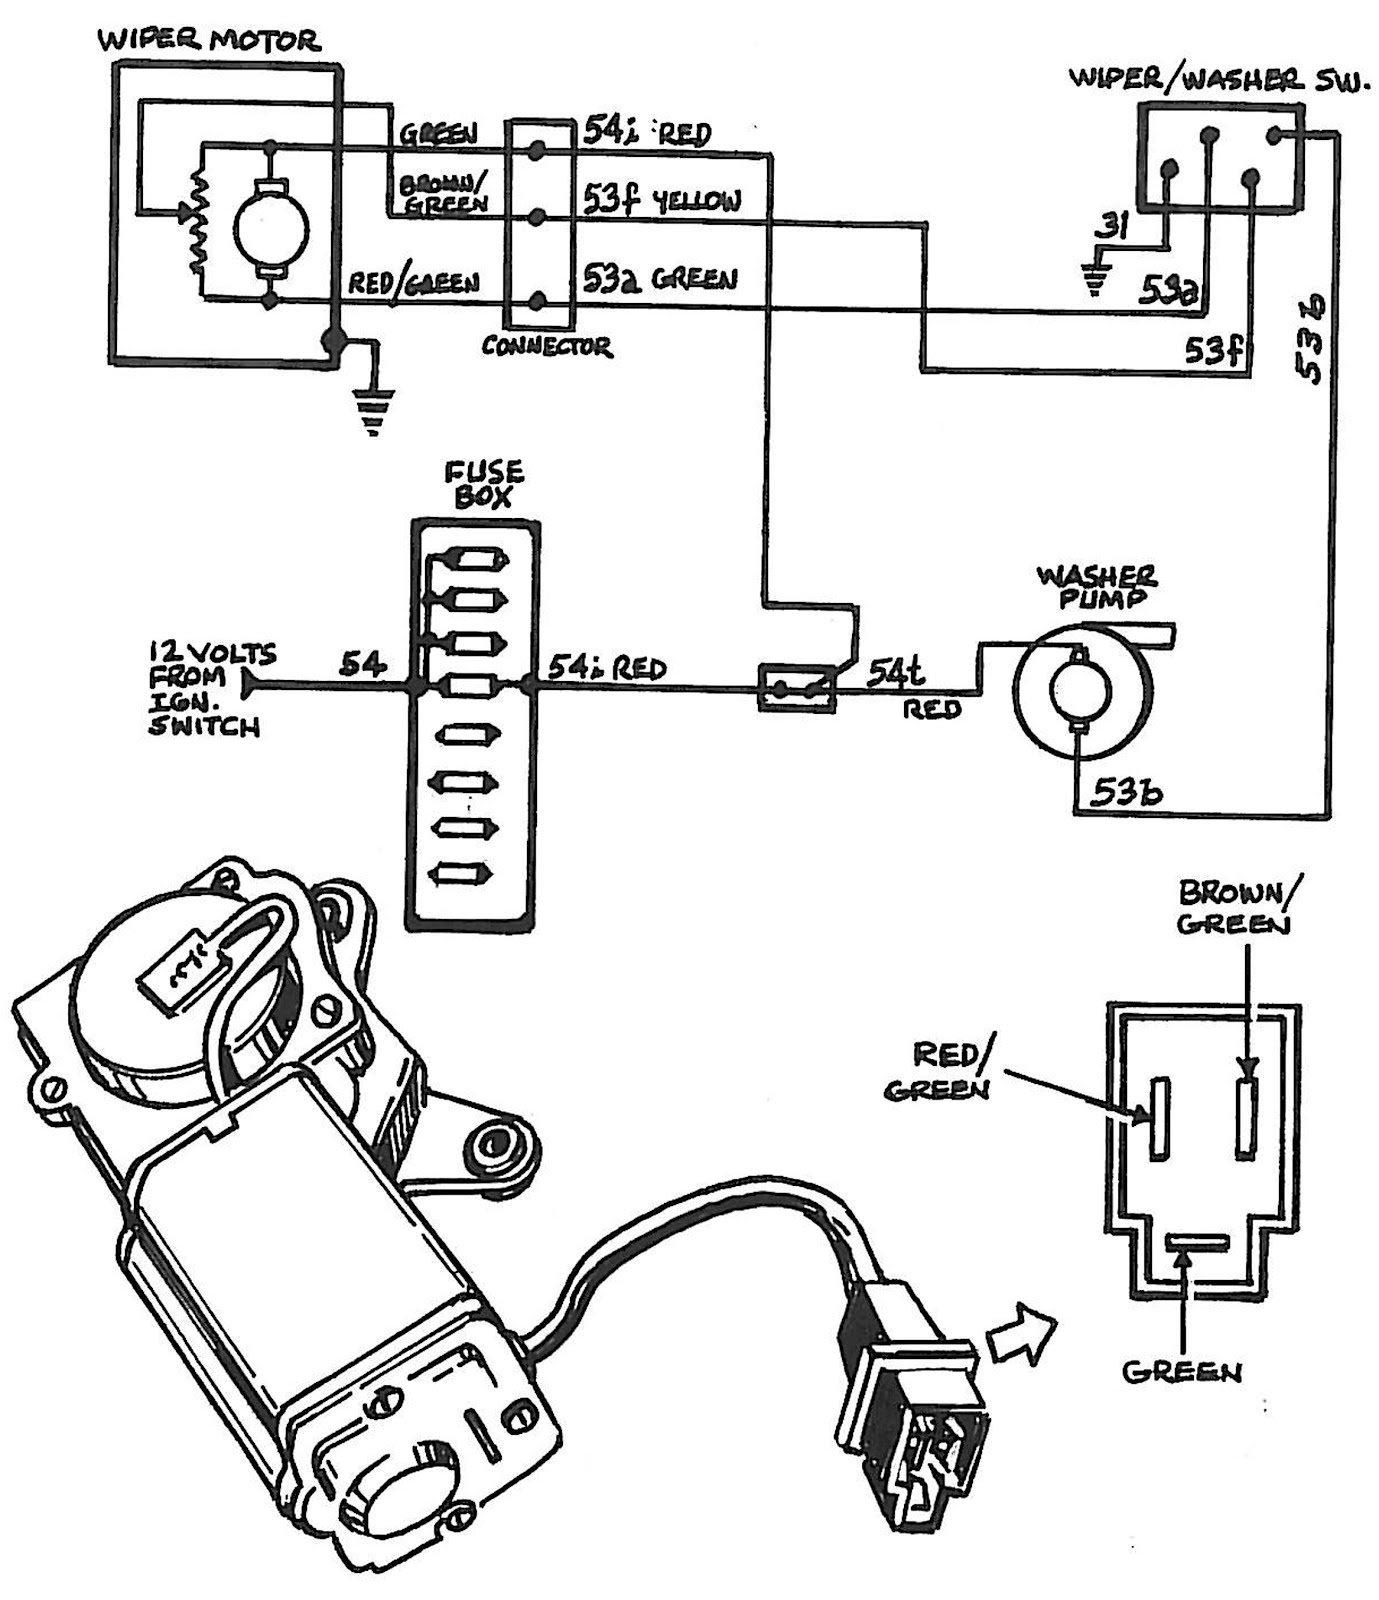 wiper motor wiring diagram chevrolet blank probability tree template get free image about